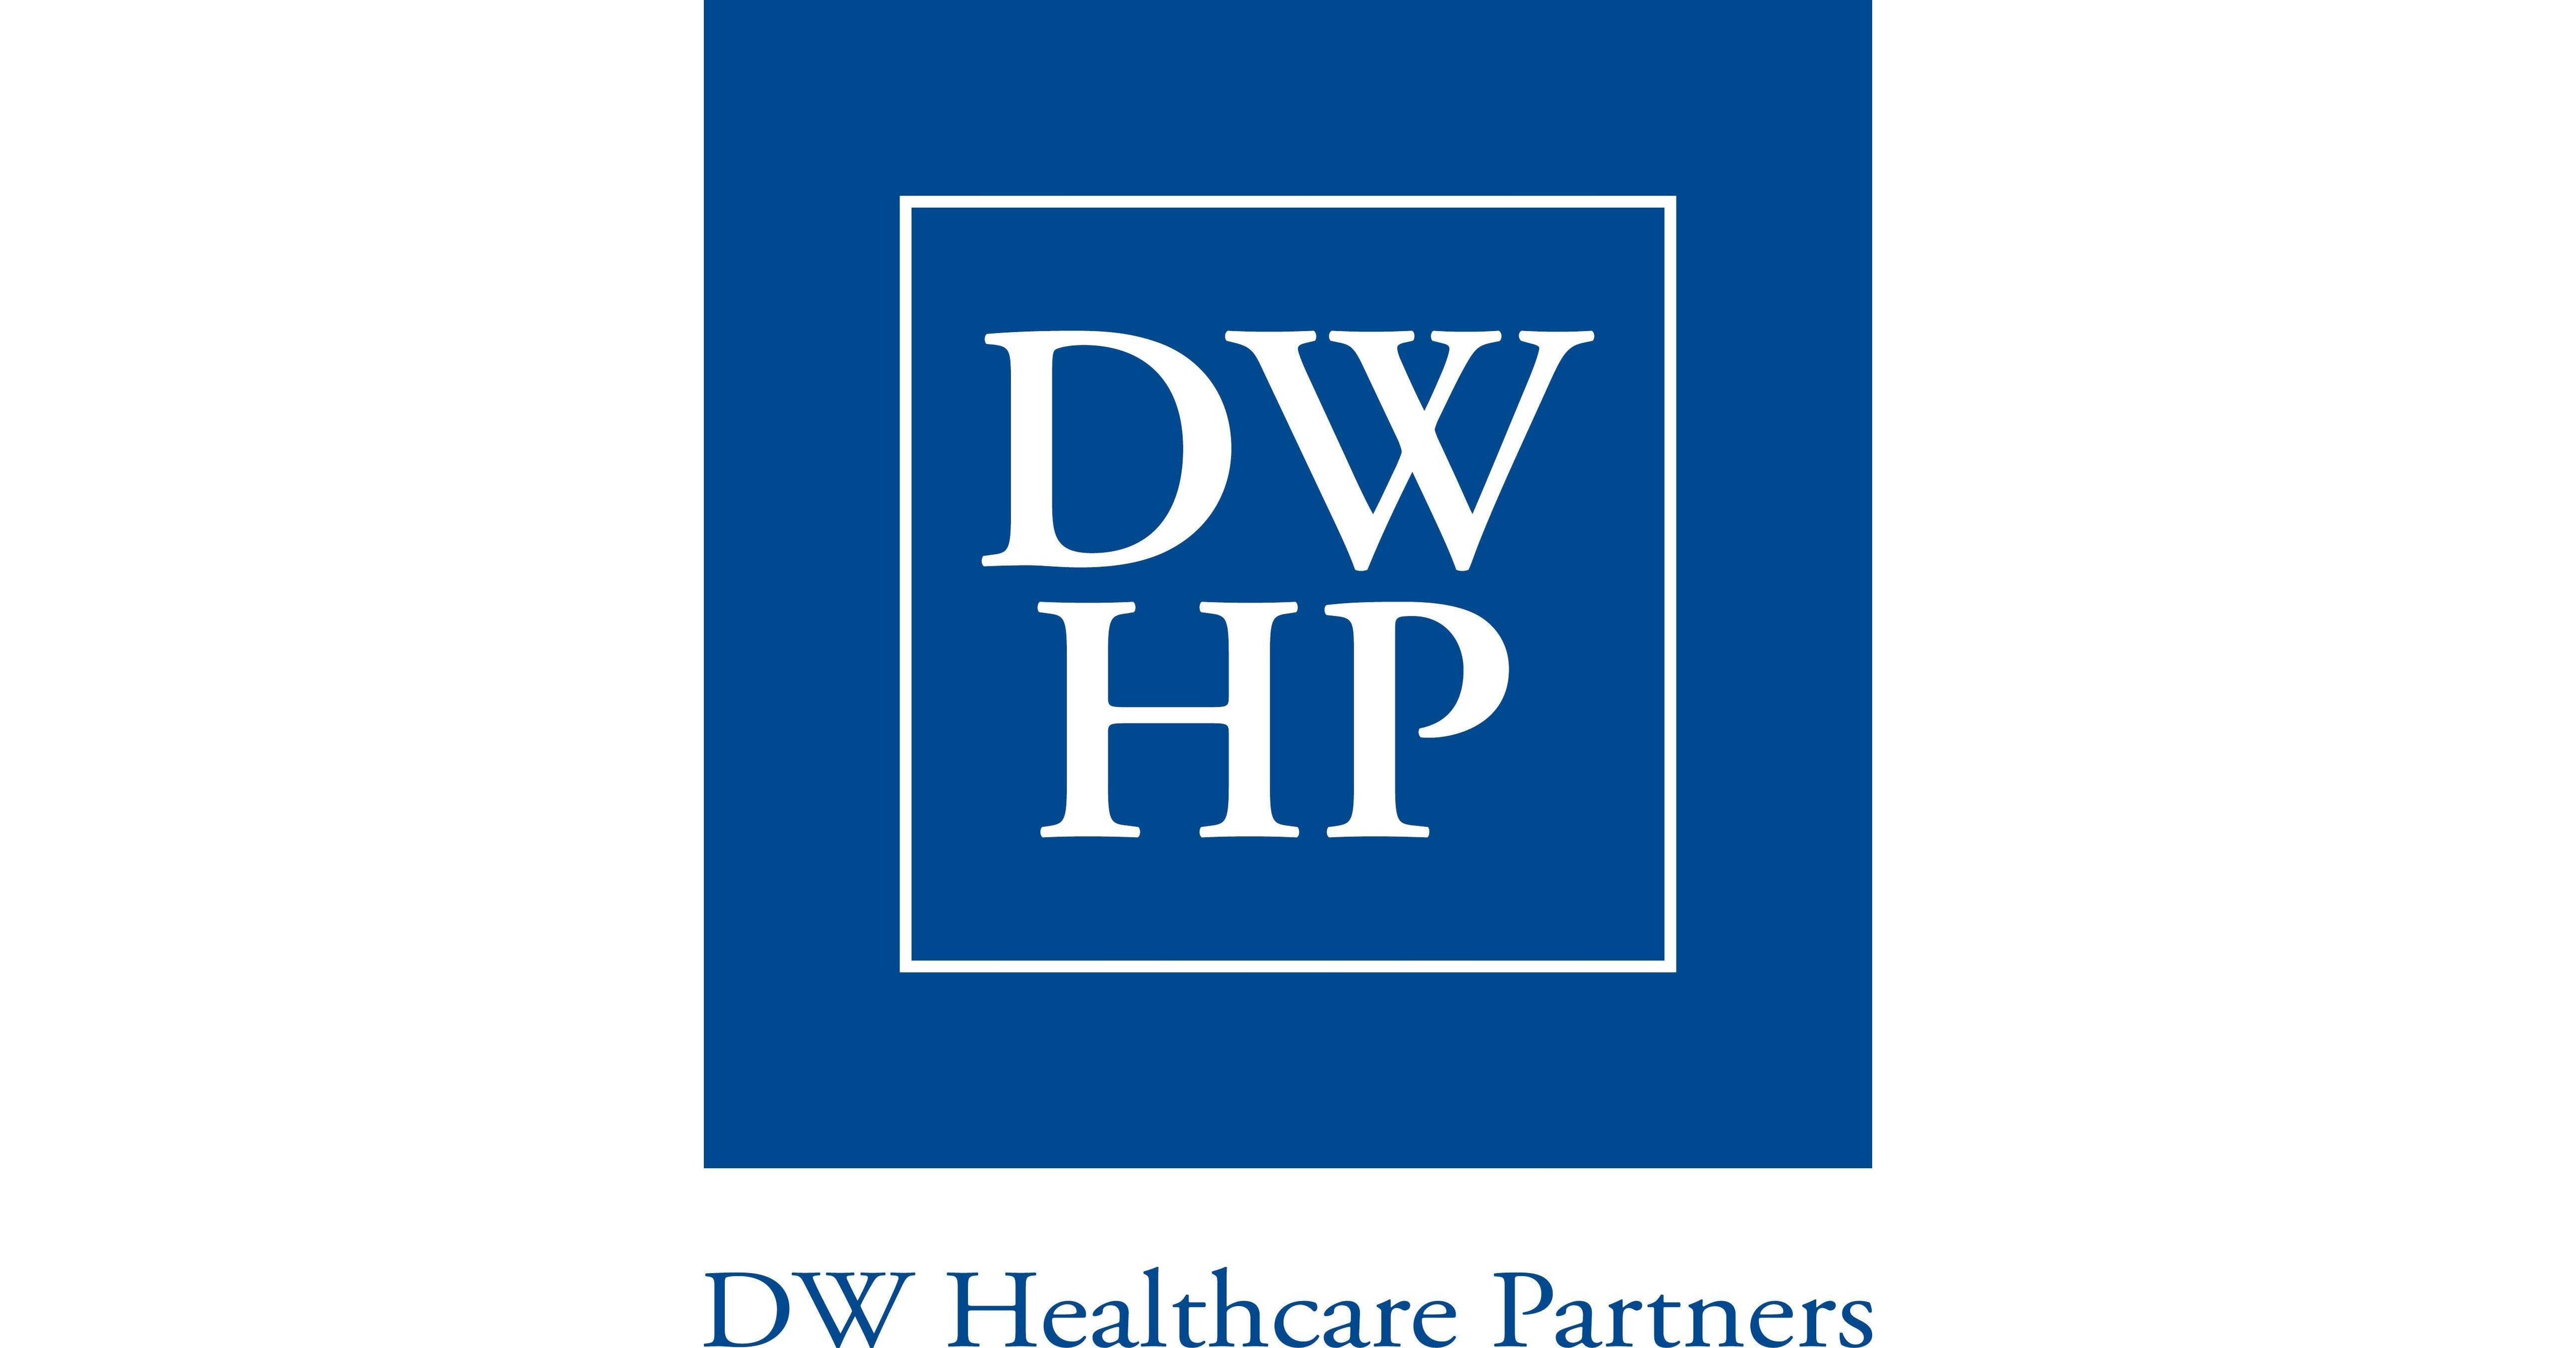 partner health care Employing machine learning and other artificial intelligence technologies to  improve the healthcare delivery system.